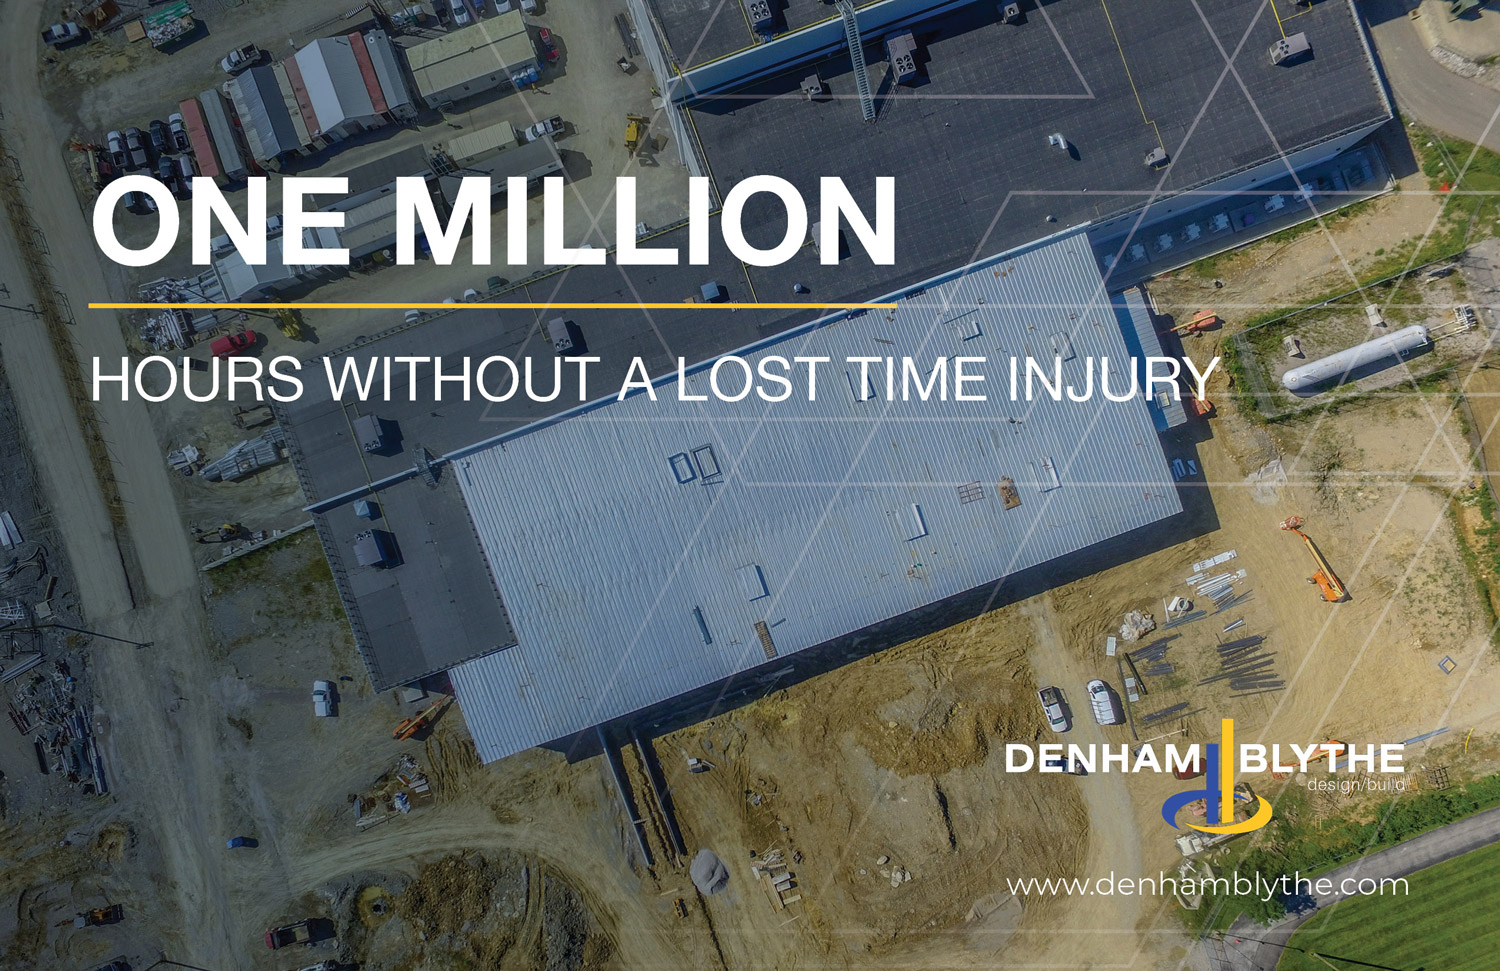 Denham-Blythe One Million Safe Hours